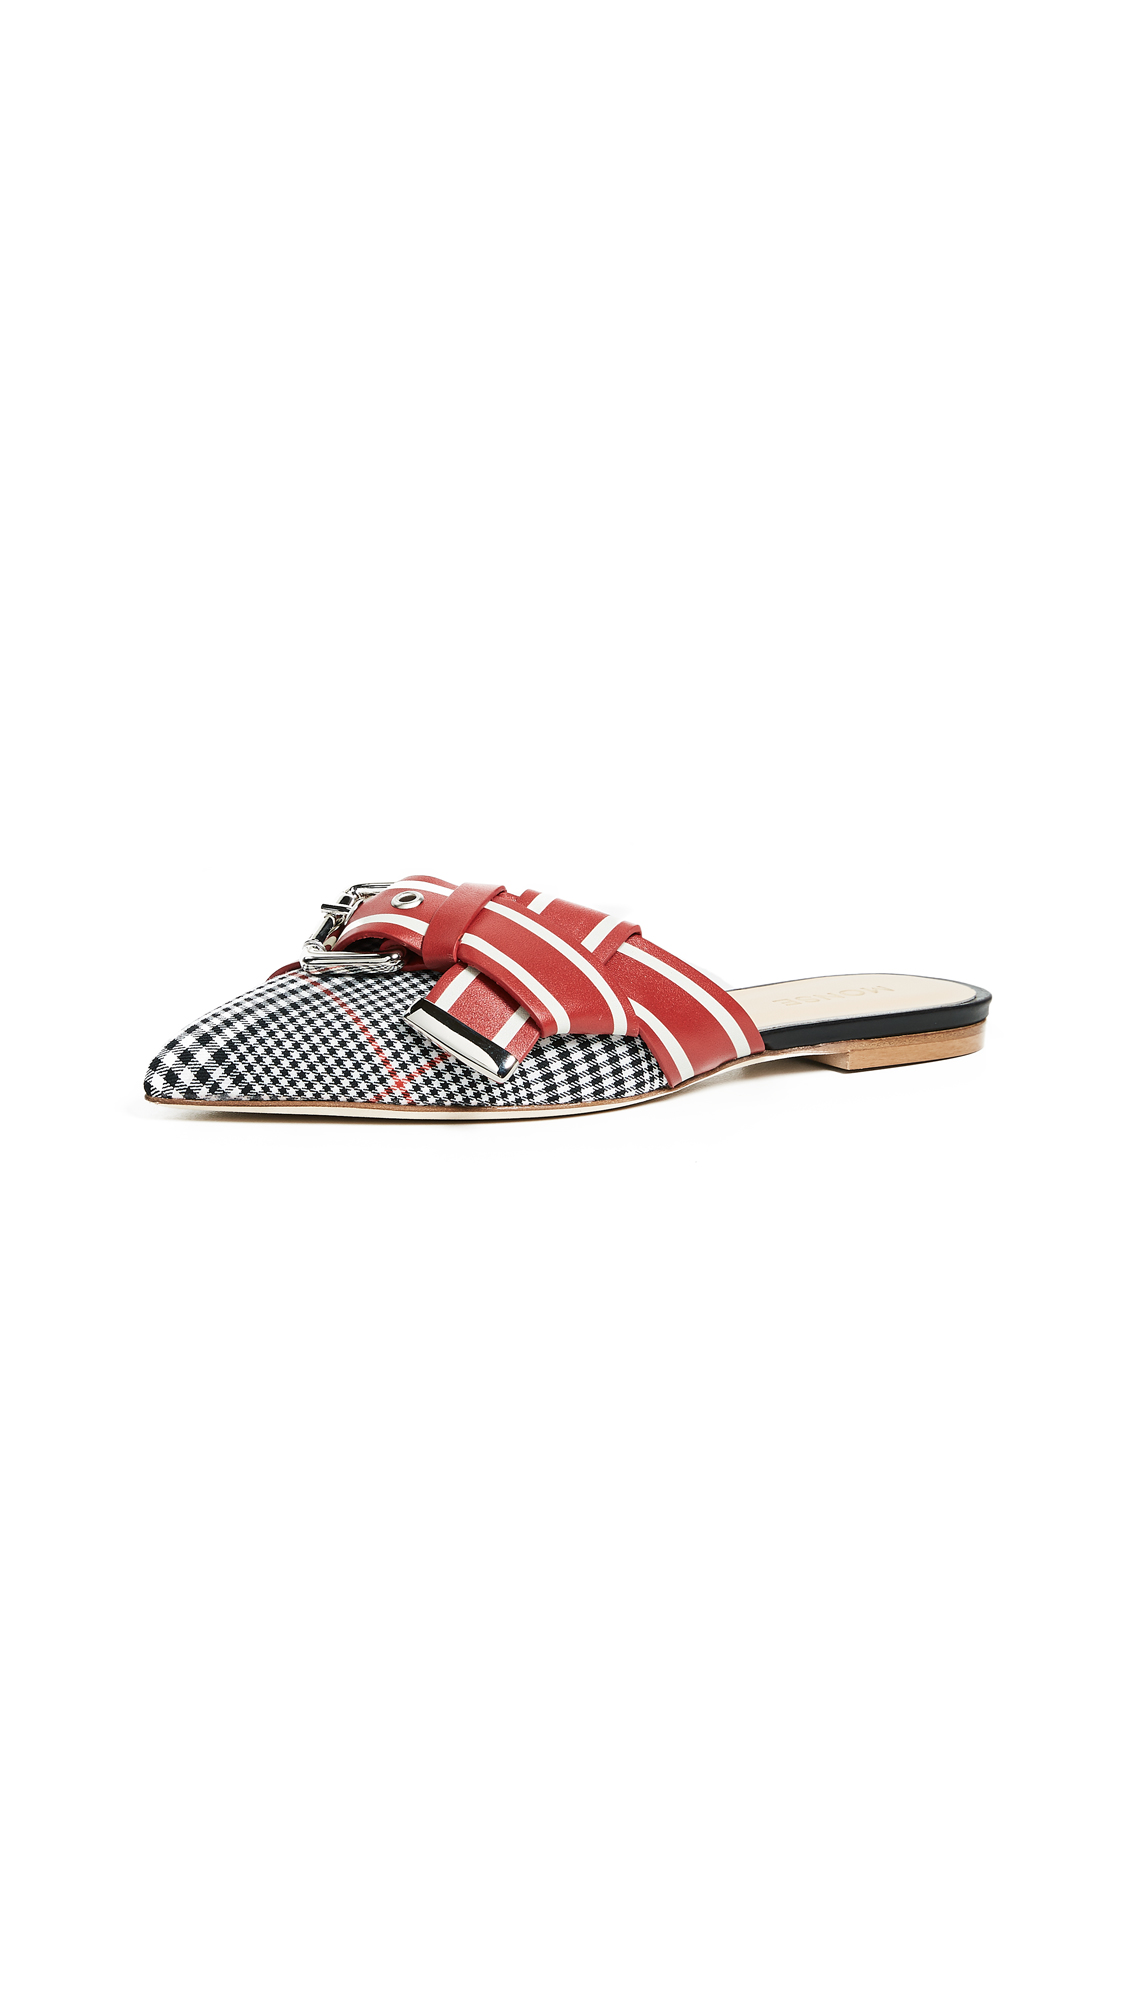 Photo of Monse Glen Plaid Racing Stripe Mules - buy Monse shoes